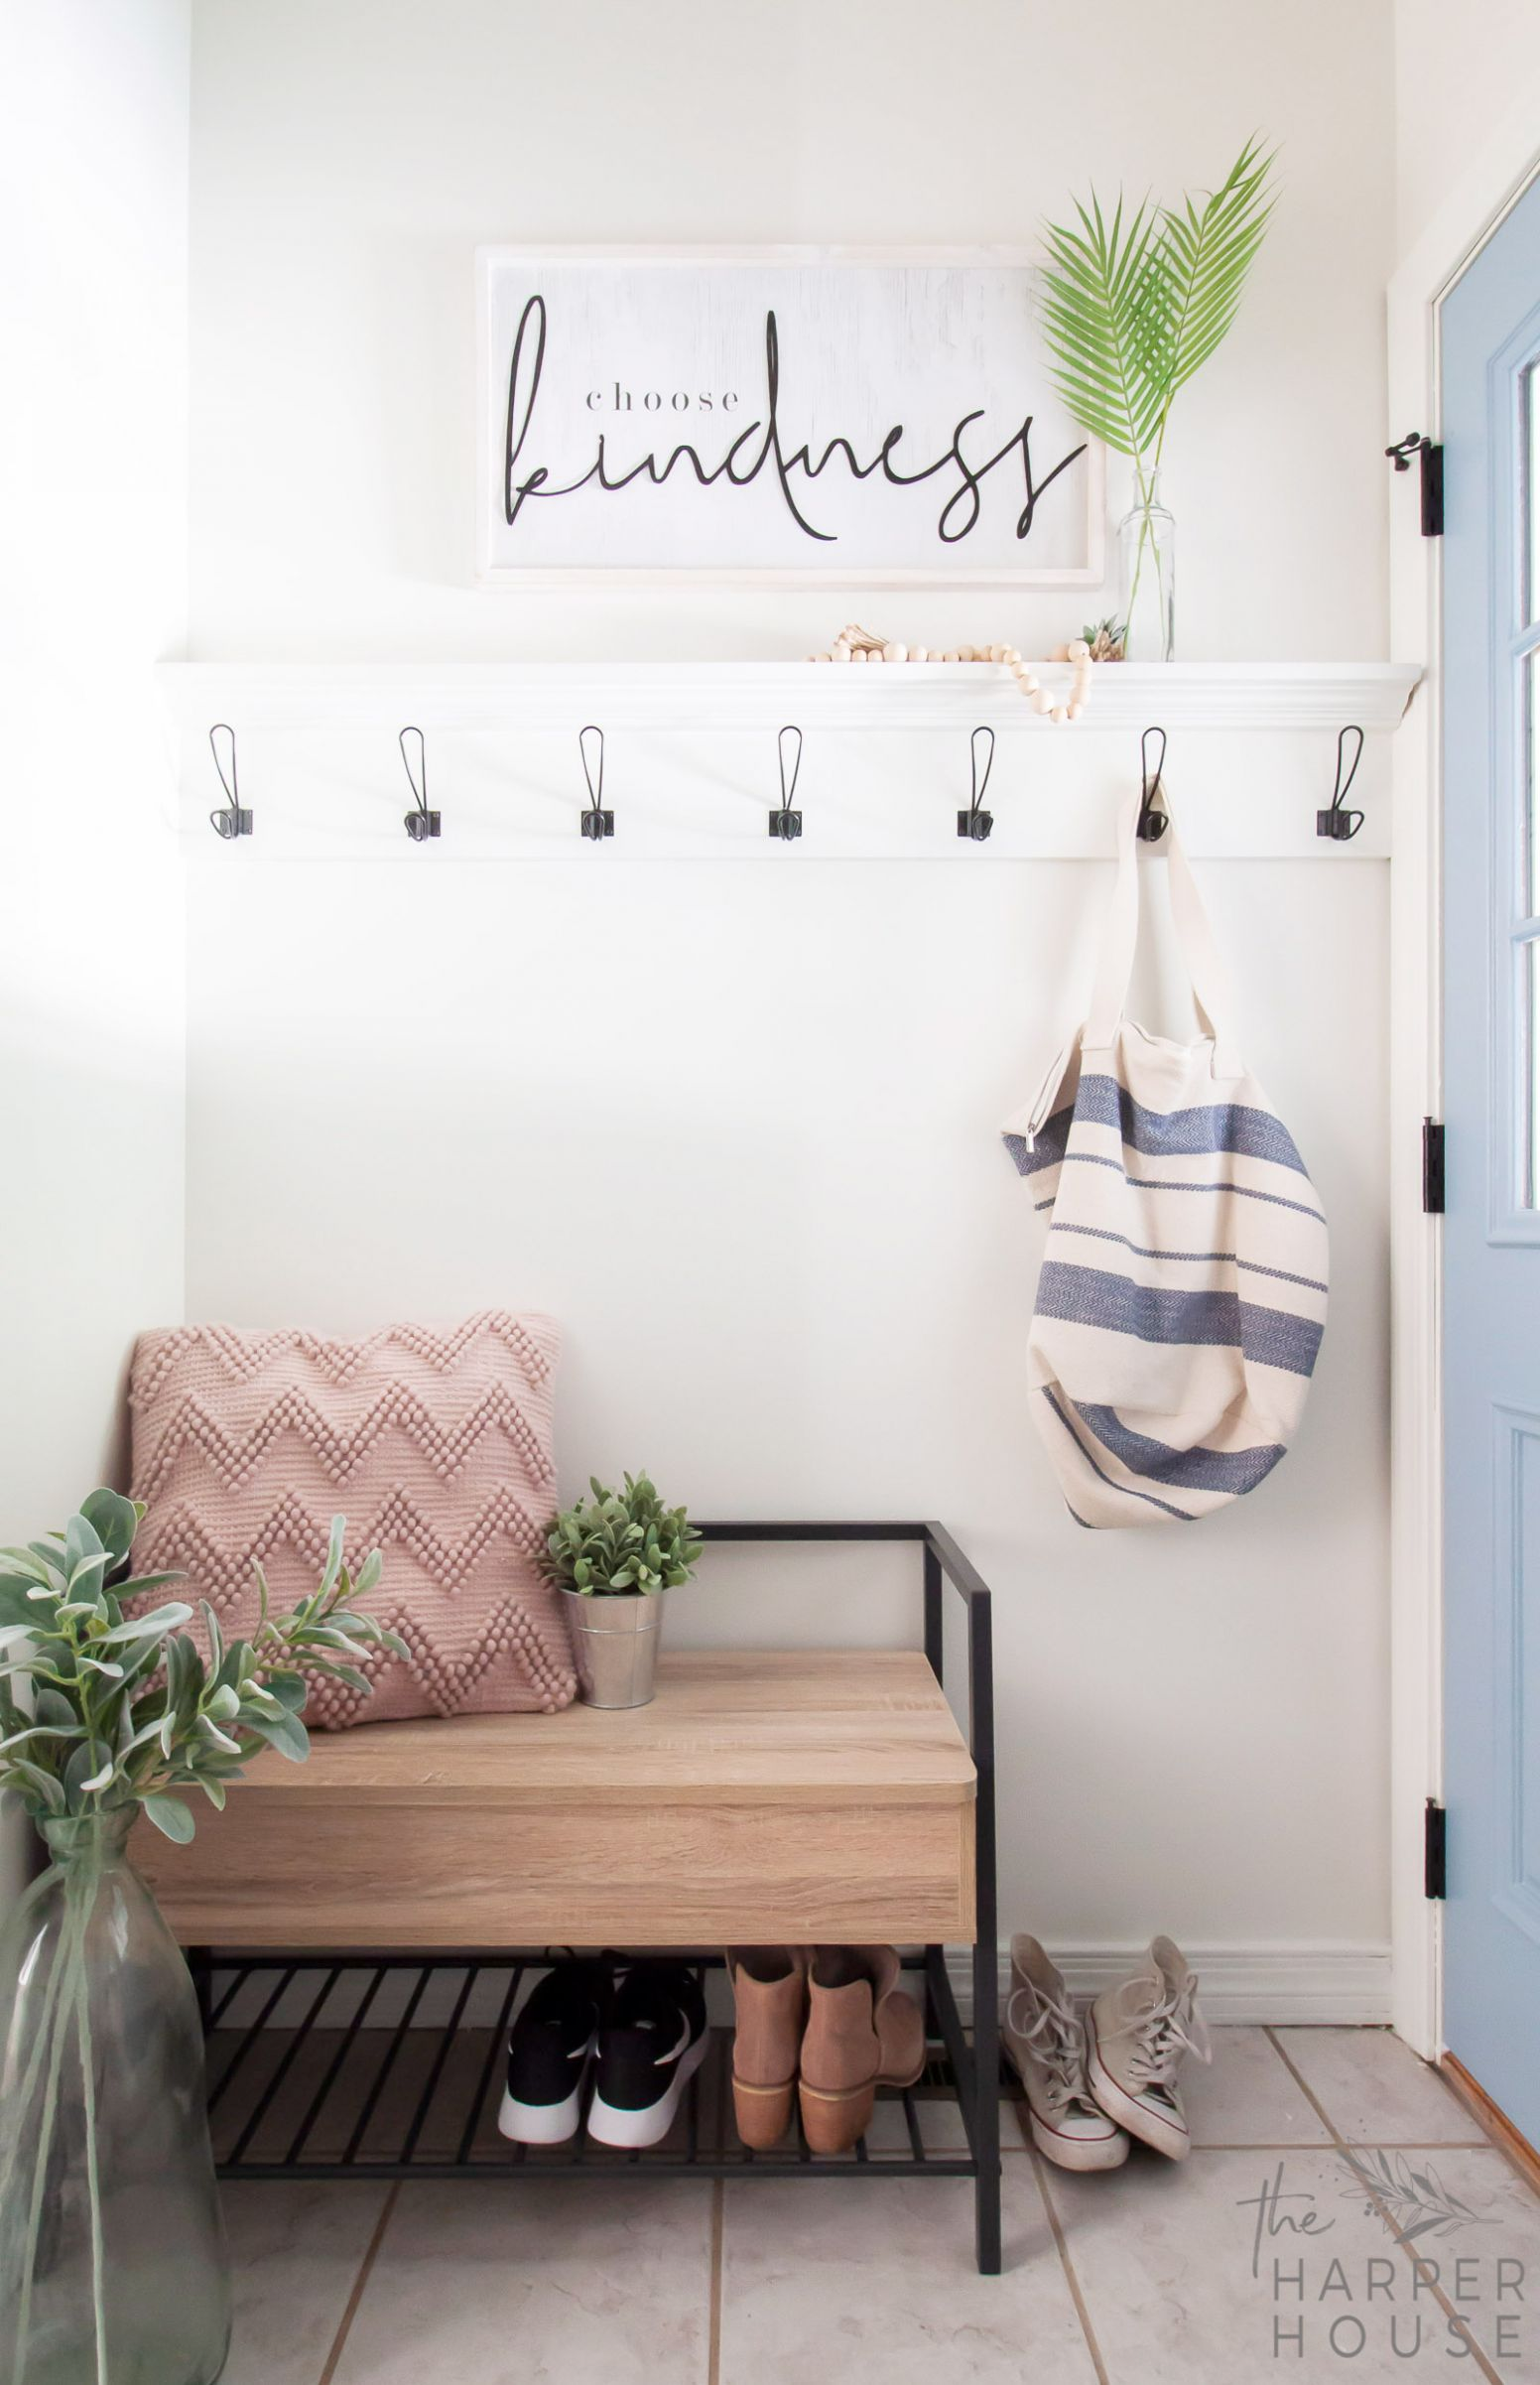 Small Laundry Room Ideas You Need To See | The Harper House - laundry room hook ideas